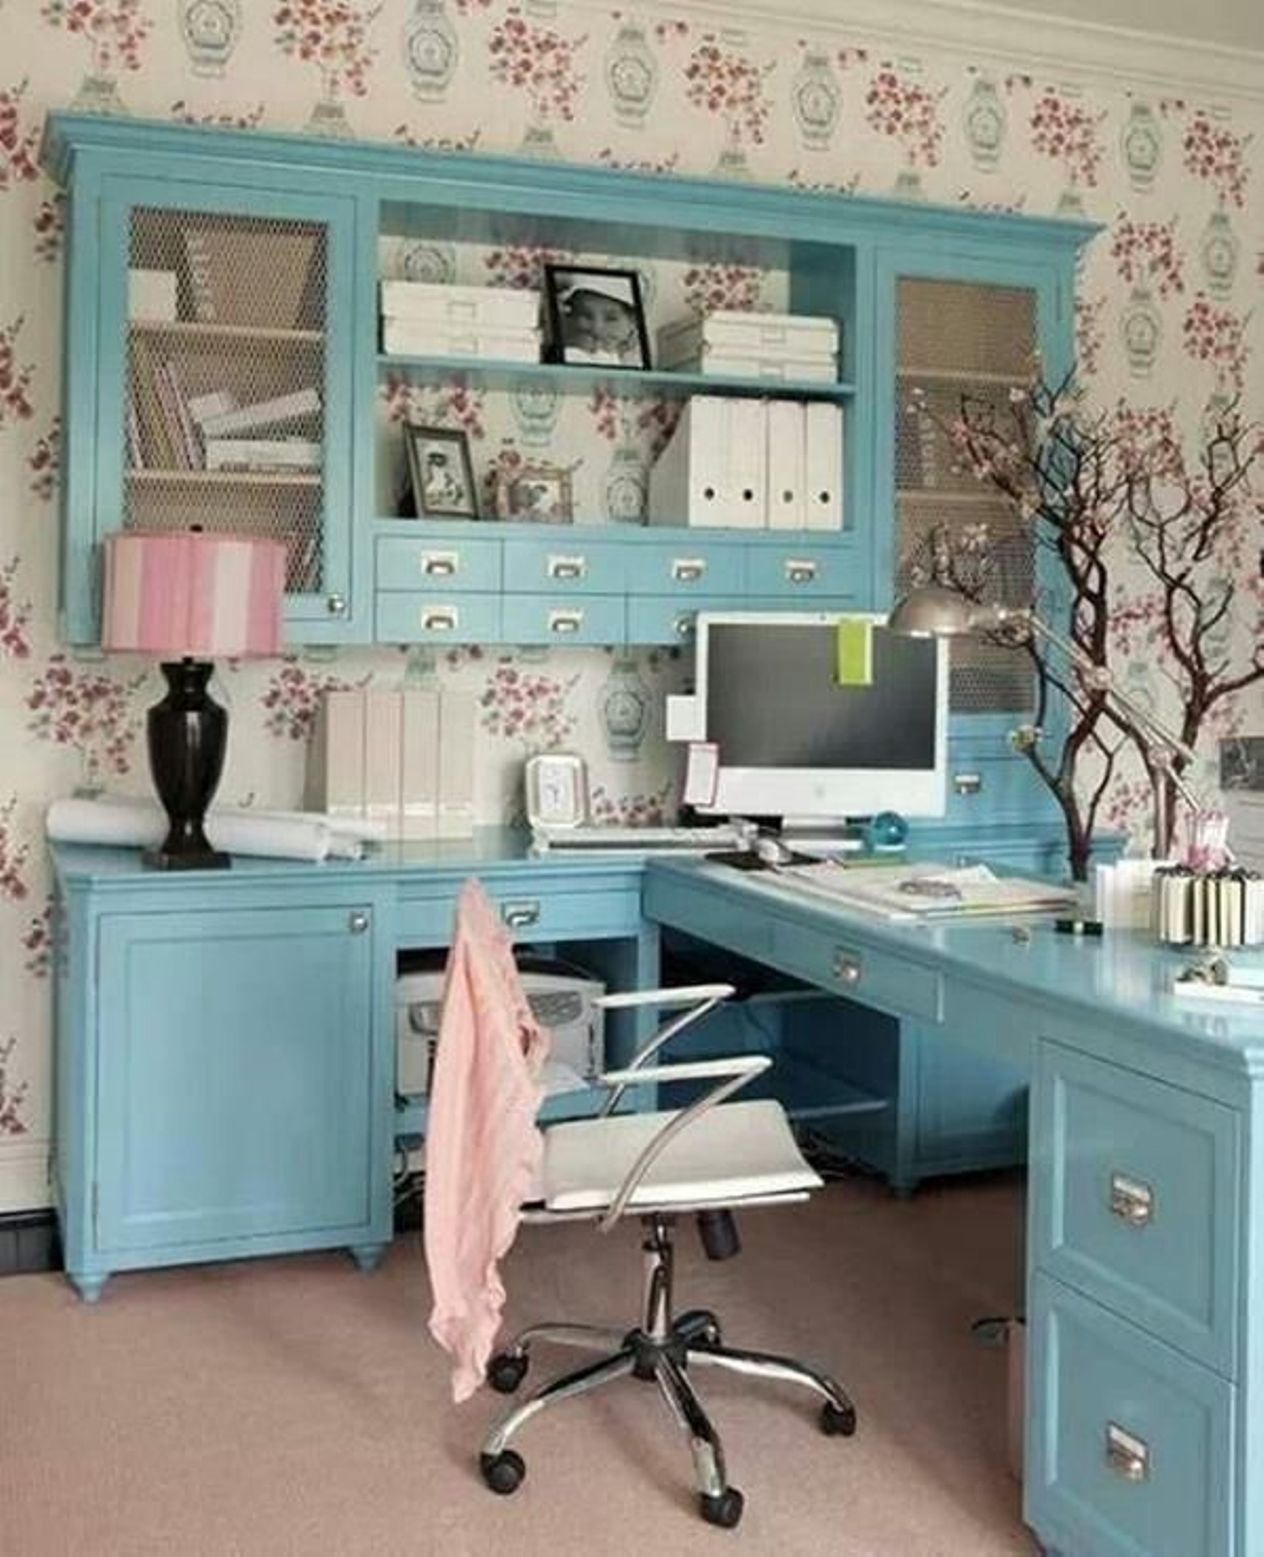 Decoration Possible Elegant Home Office Decoration For: This Elegant Feminine Home Office Decor Is Correlated With